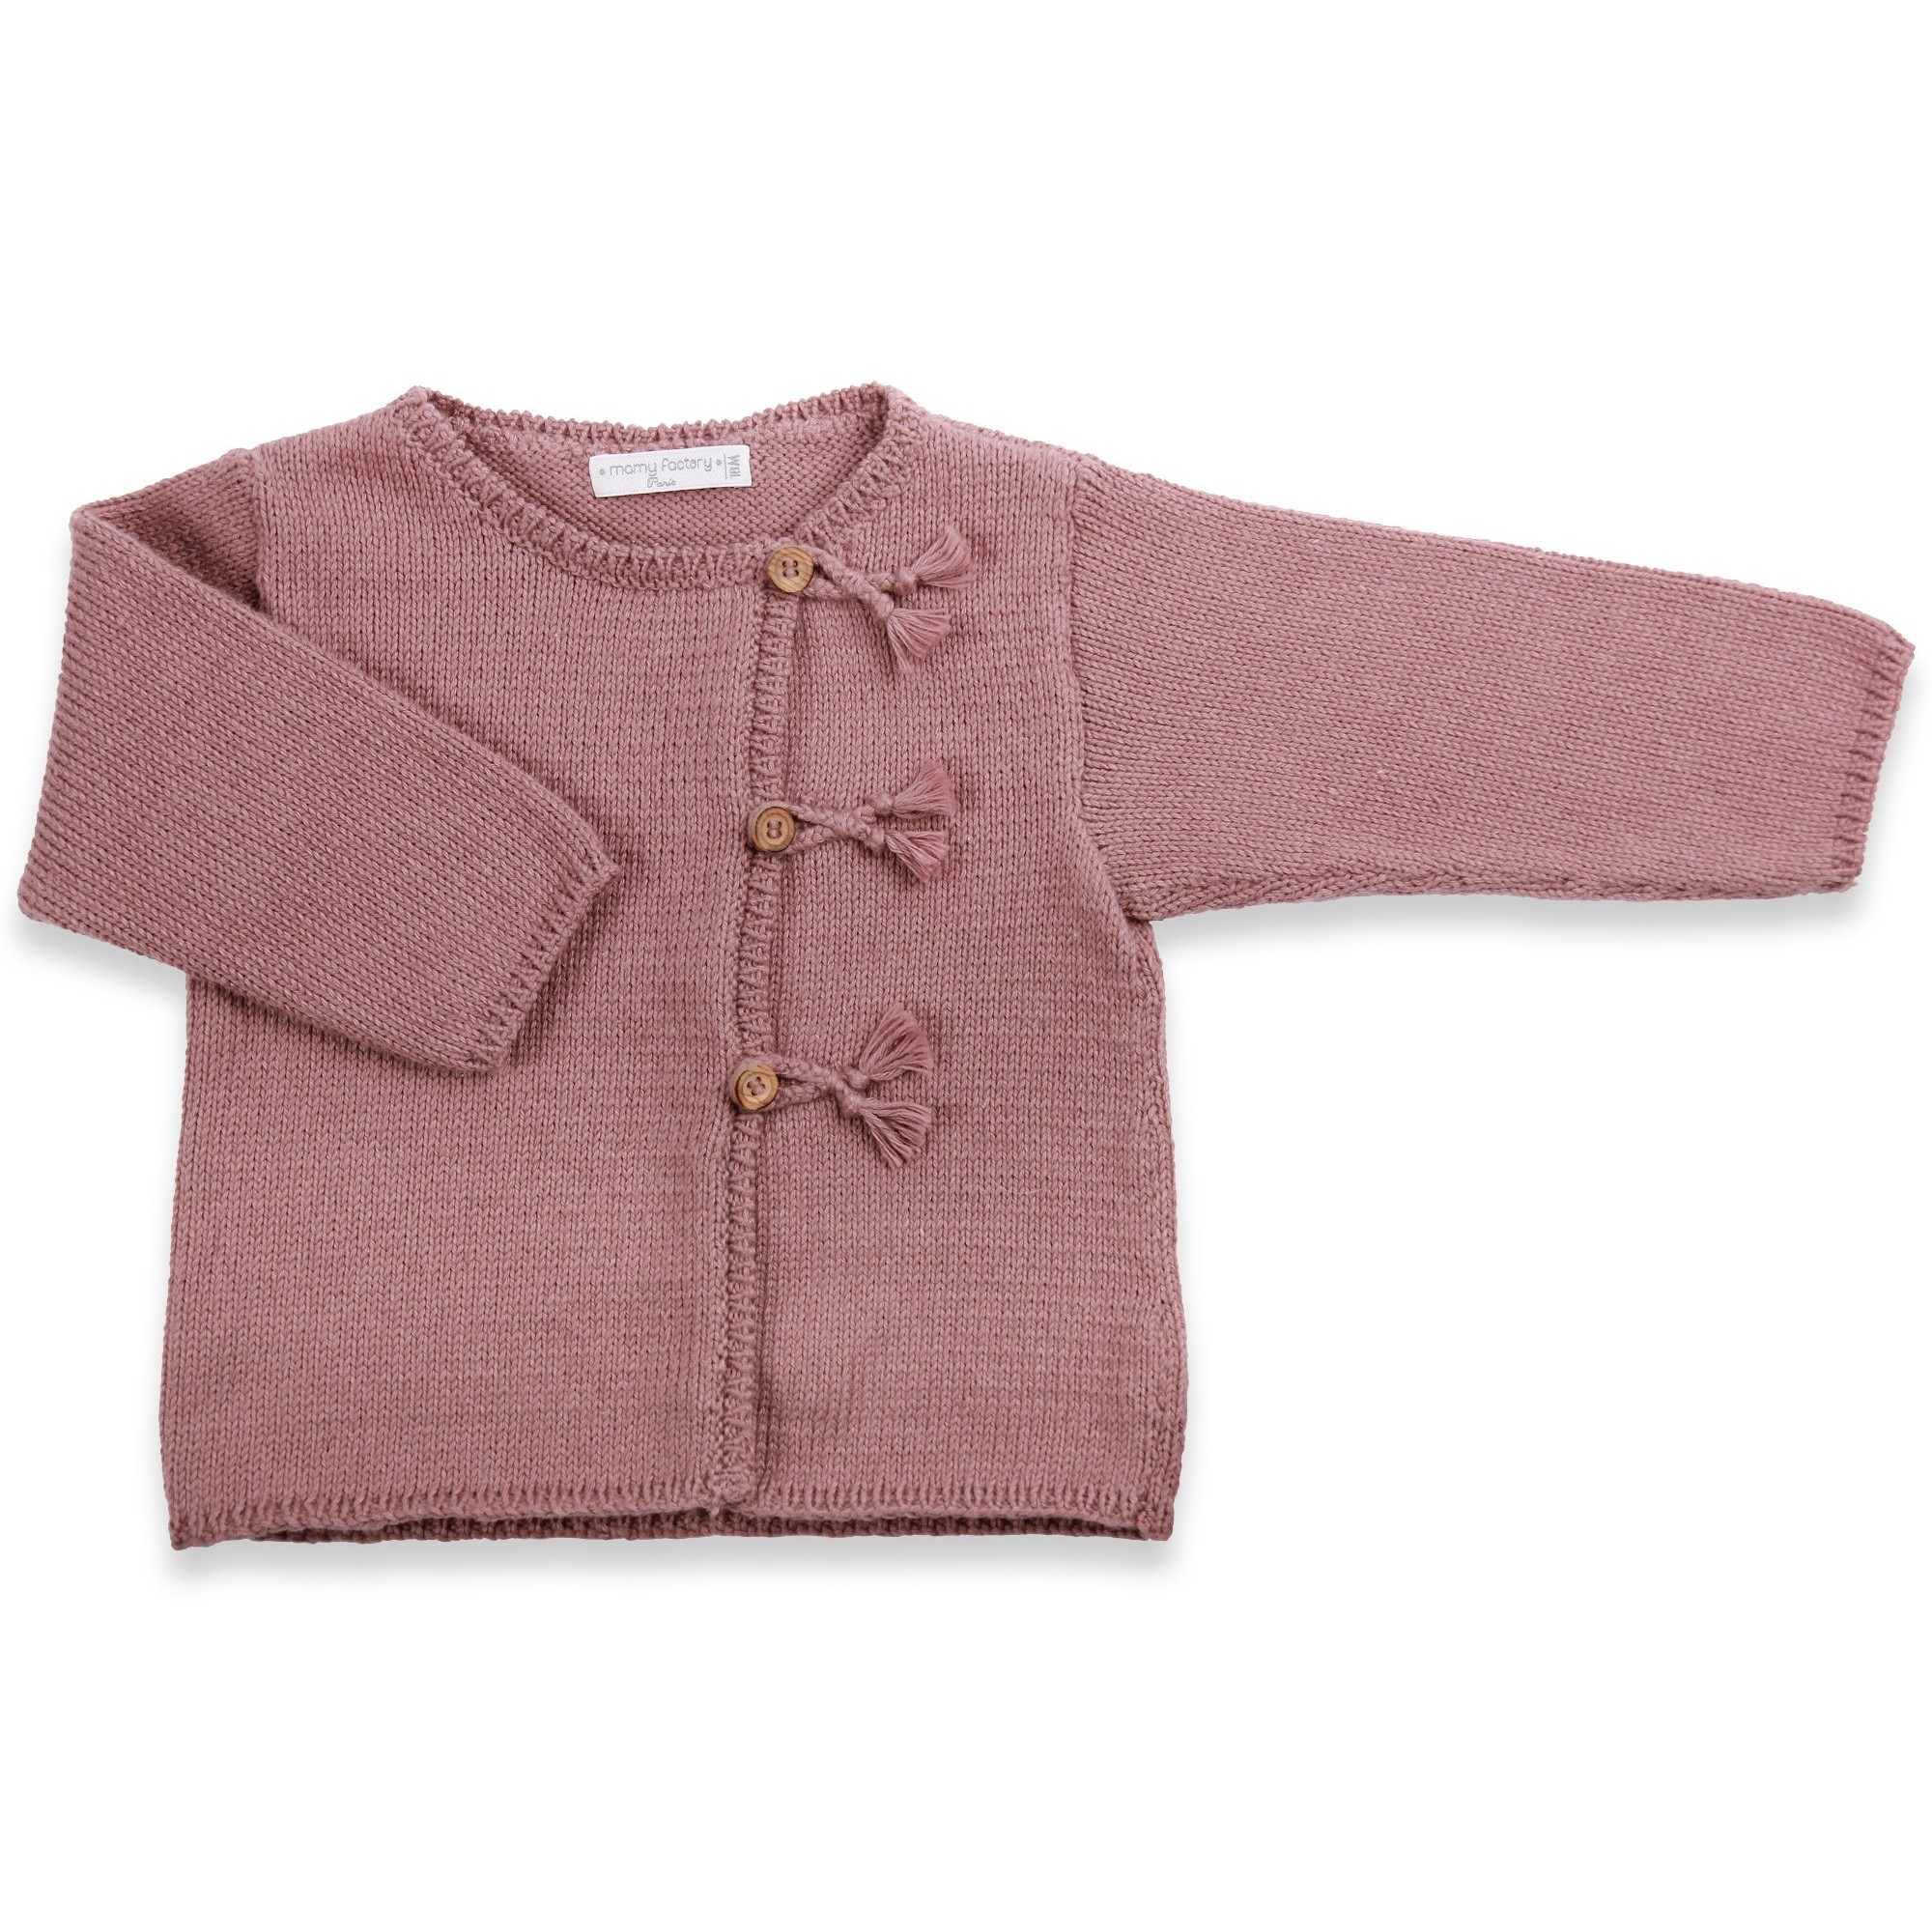 Taupe baby cardigan knitted in stockinette stitch made from cotton and cashmere yarns